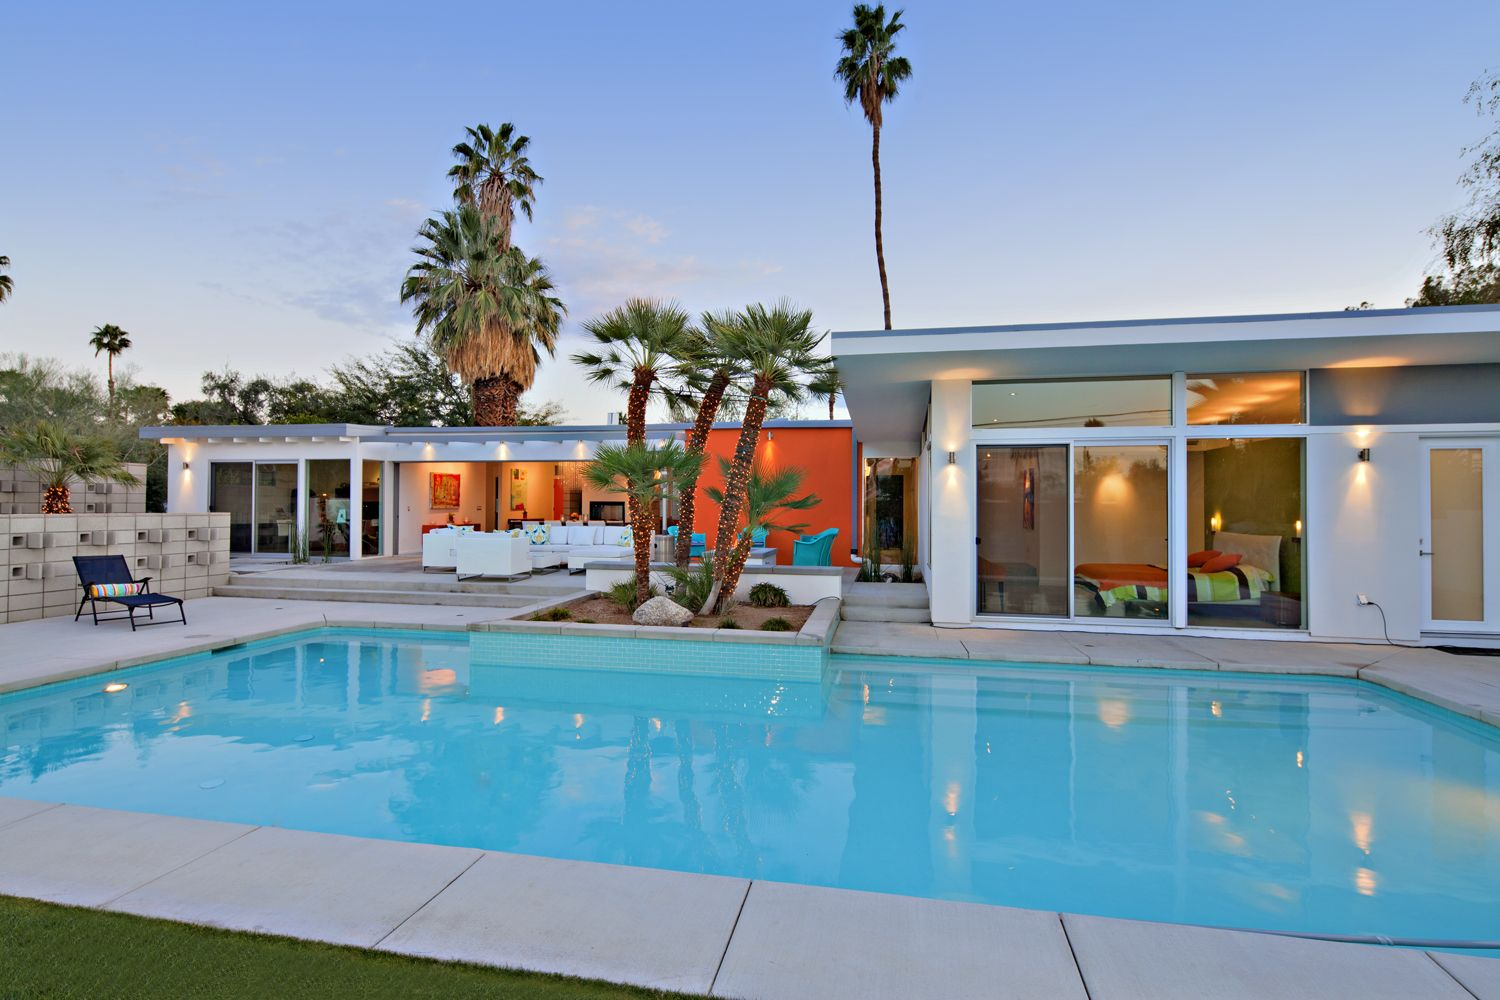 Mid Century Modern Home And Pool In Palm Desert Ca But